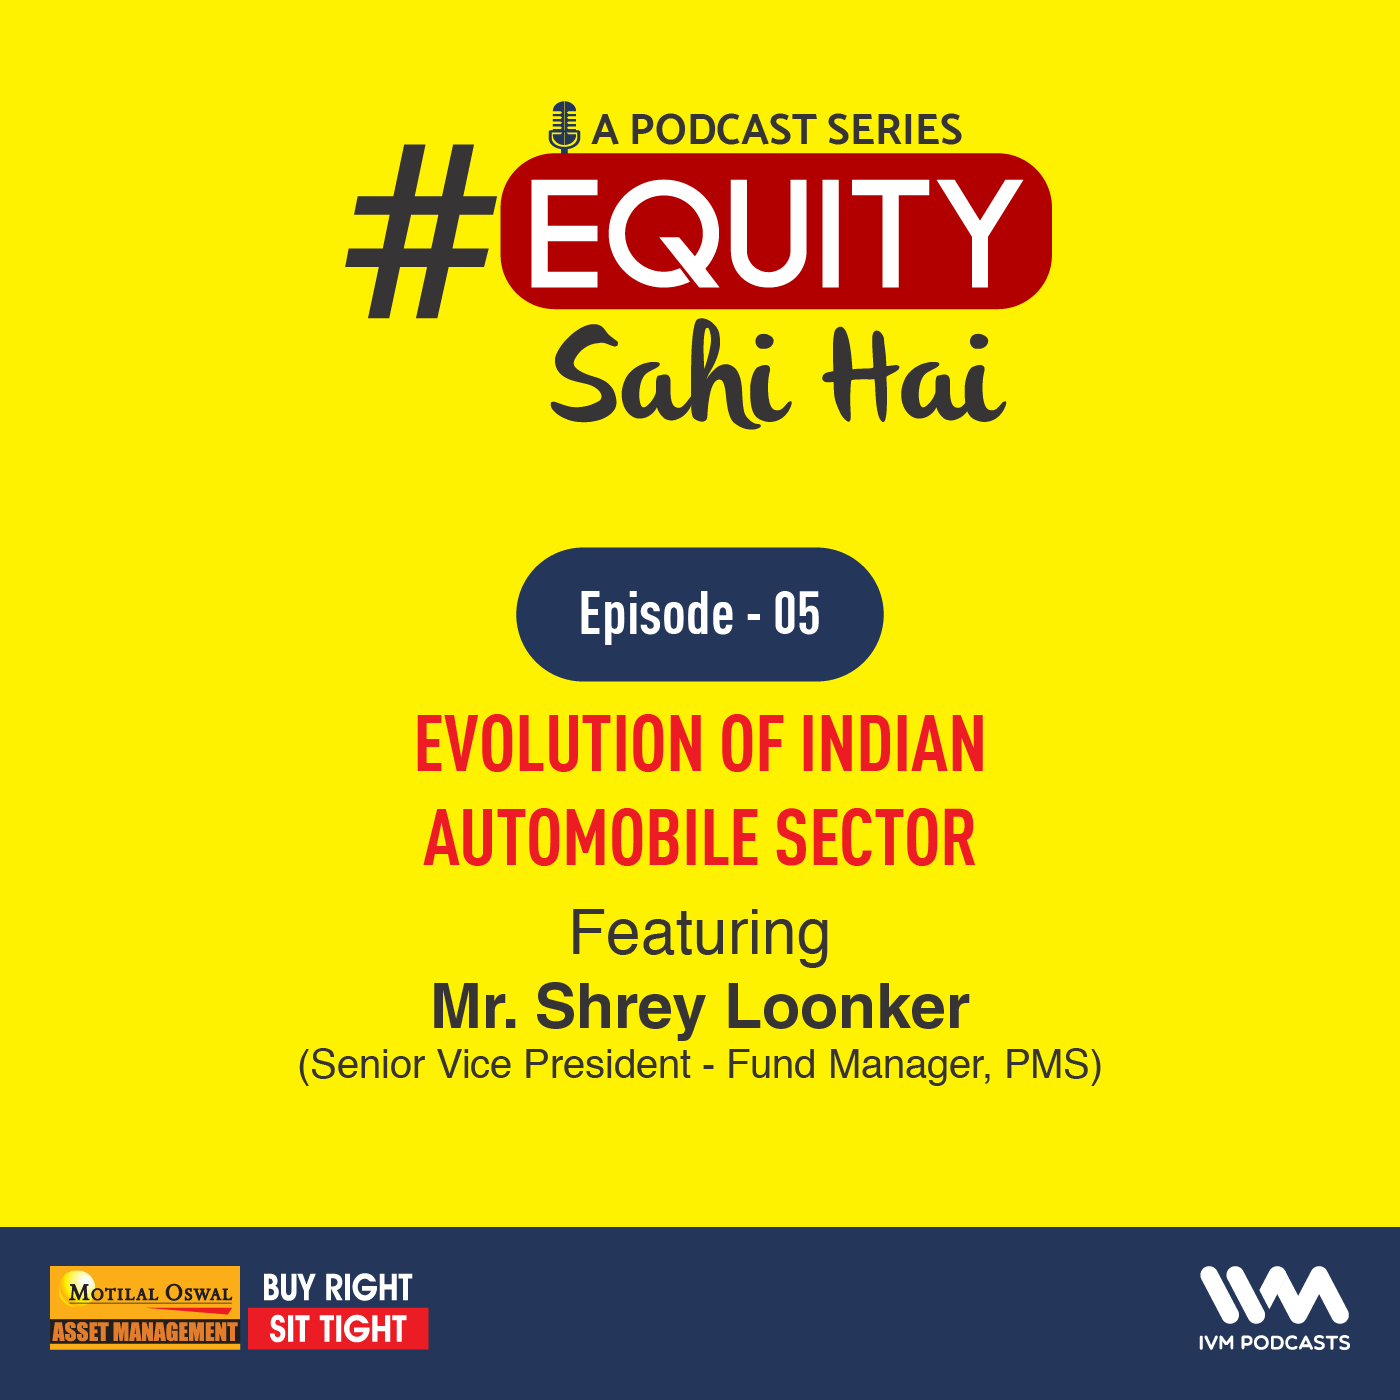 Ep. 05: Evolution of Indian Automobile Sector